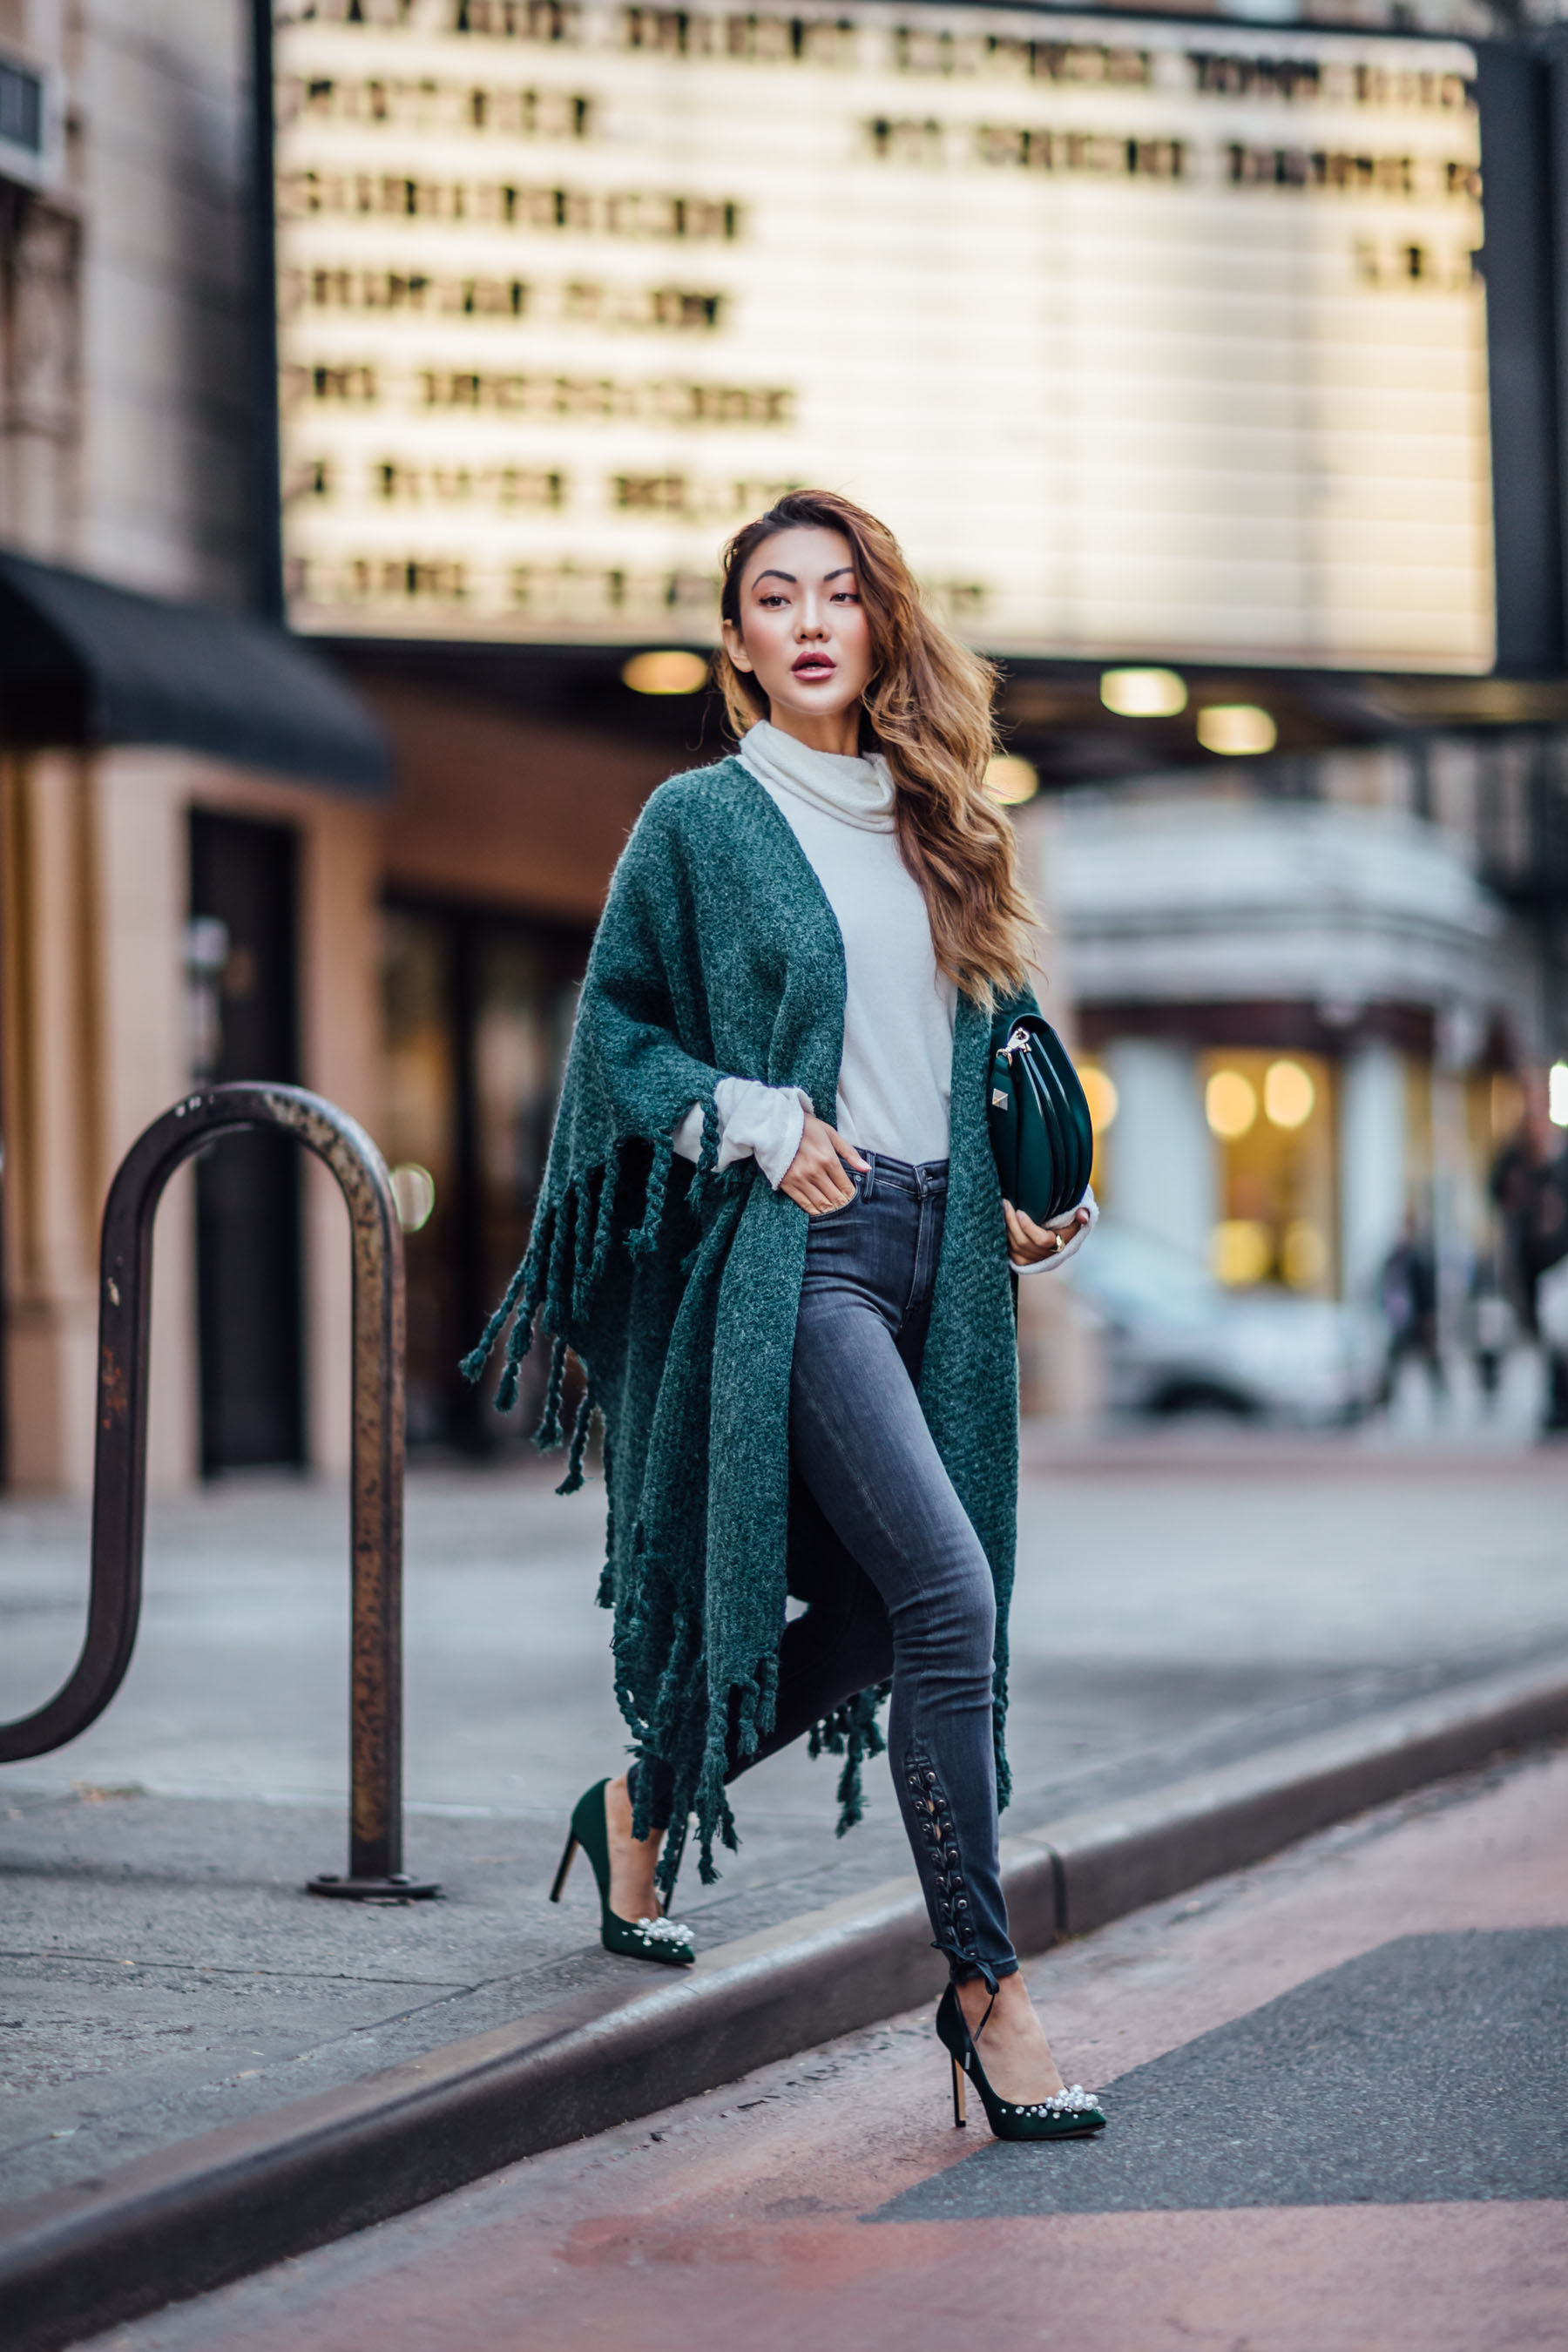 Fashion Details to Step Up Your Winter Look - Fringe Kimono, Lace up jeans, embellished pumps // Notjessfashion // Jessica wang, winter outfits, stylish winter outfit, fashion blogger, street style, winter street style, green satin pumps, nine west heels, fringe details, asian blogger